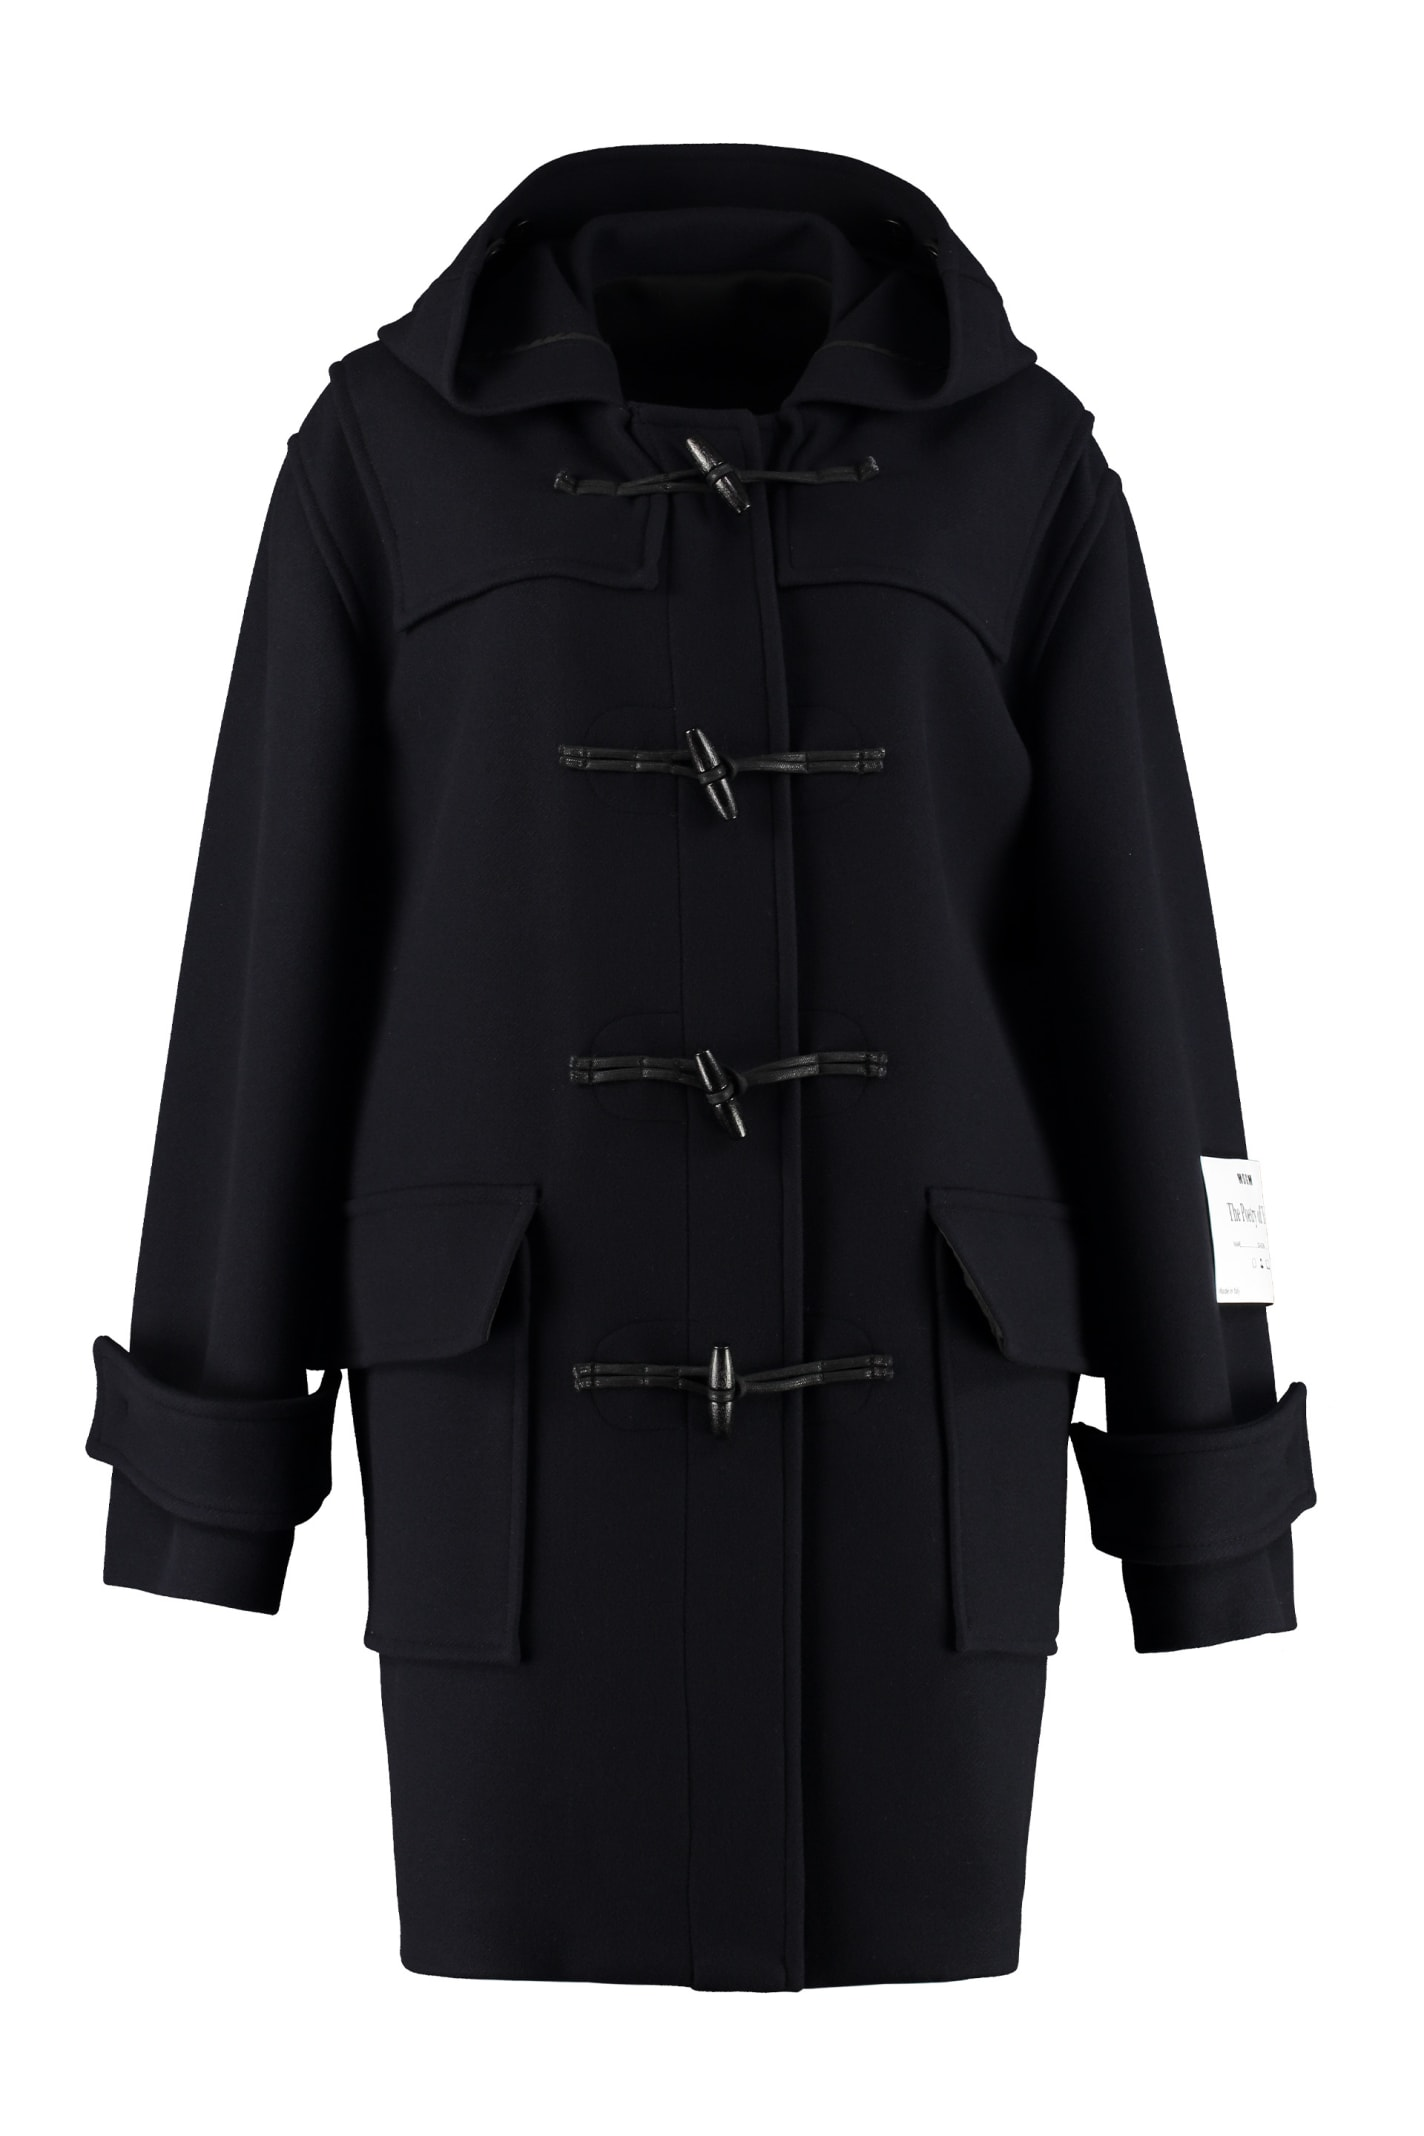 MSGM Virgin Wool Coat